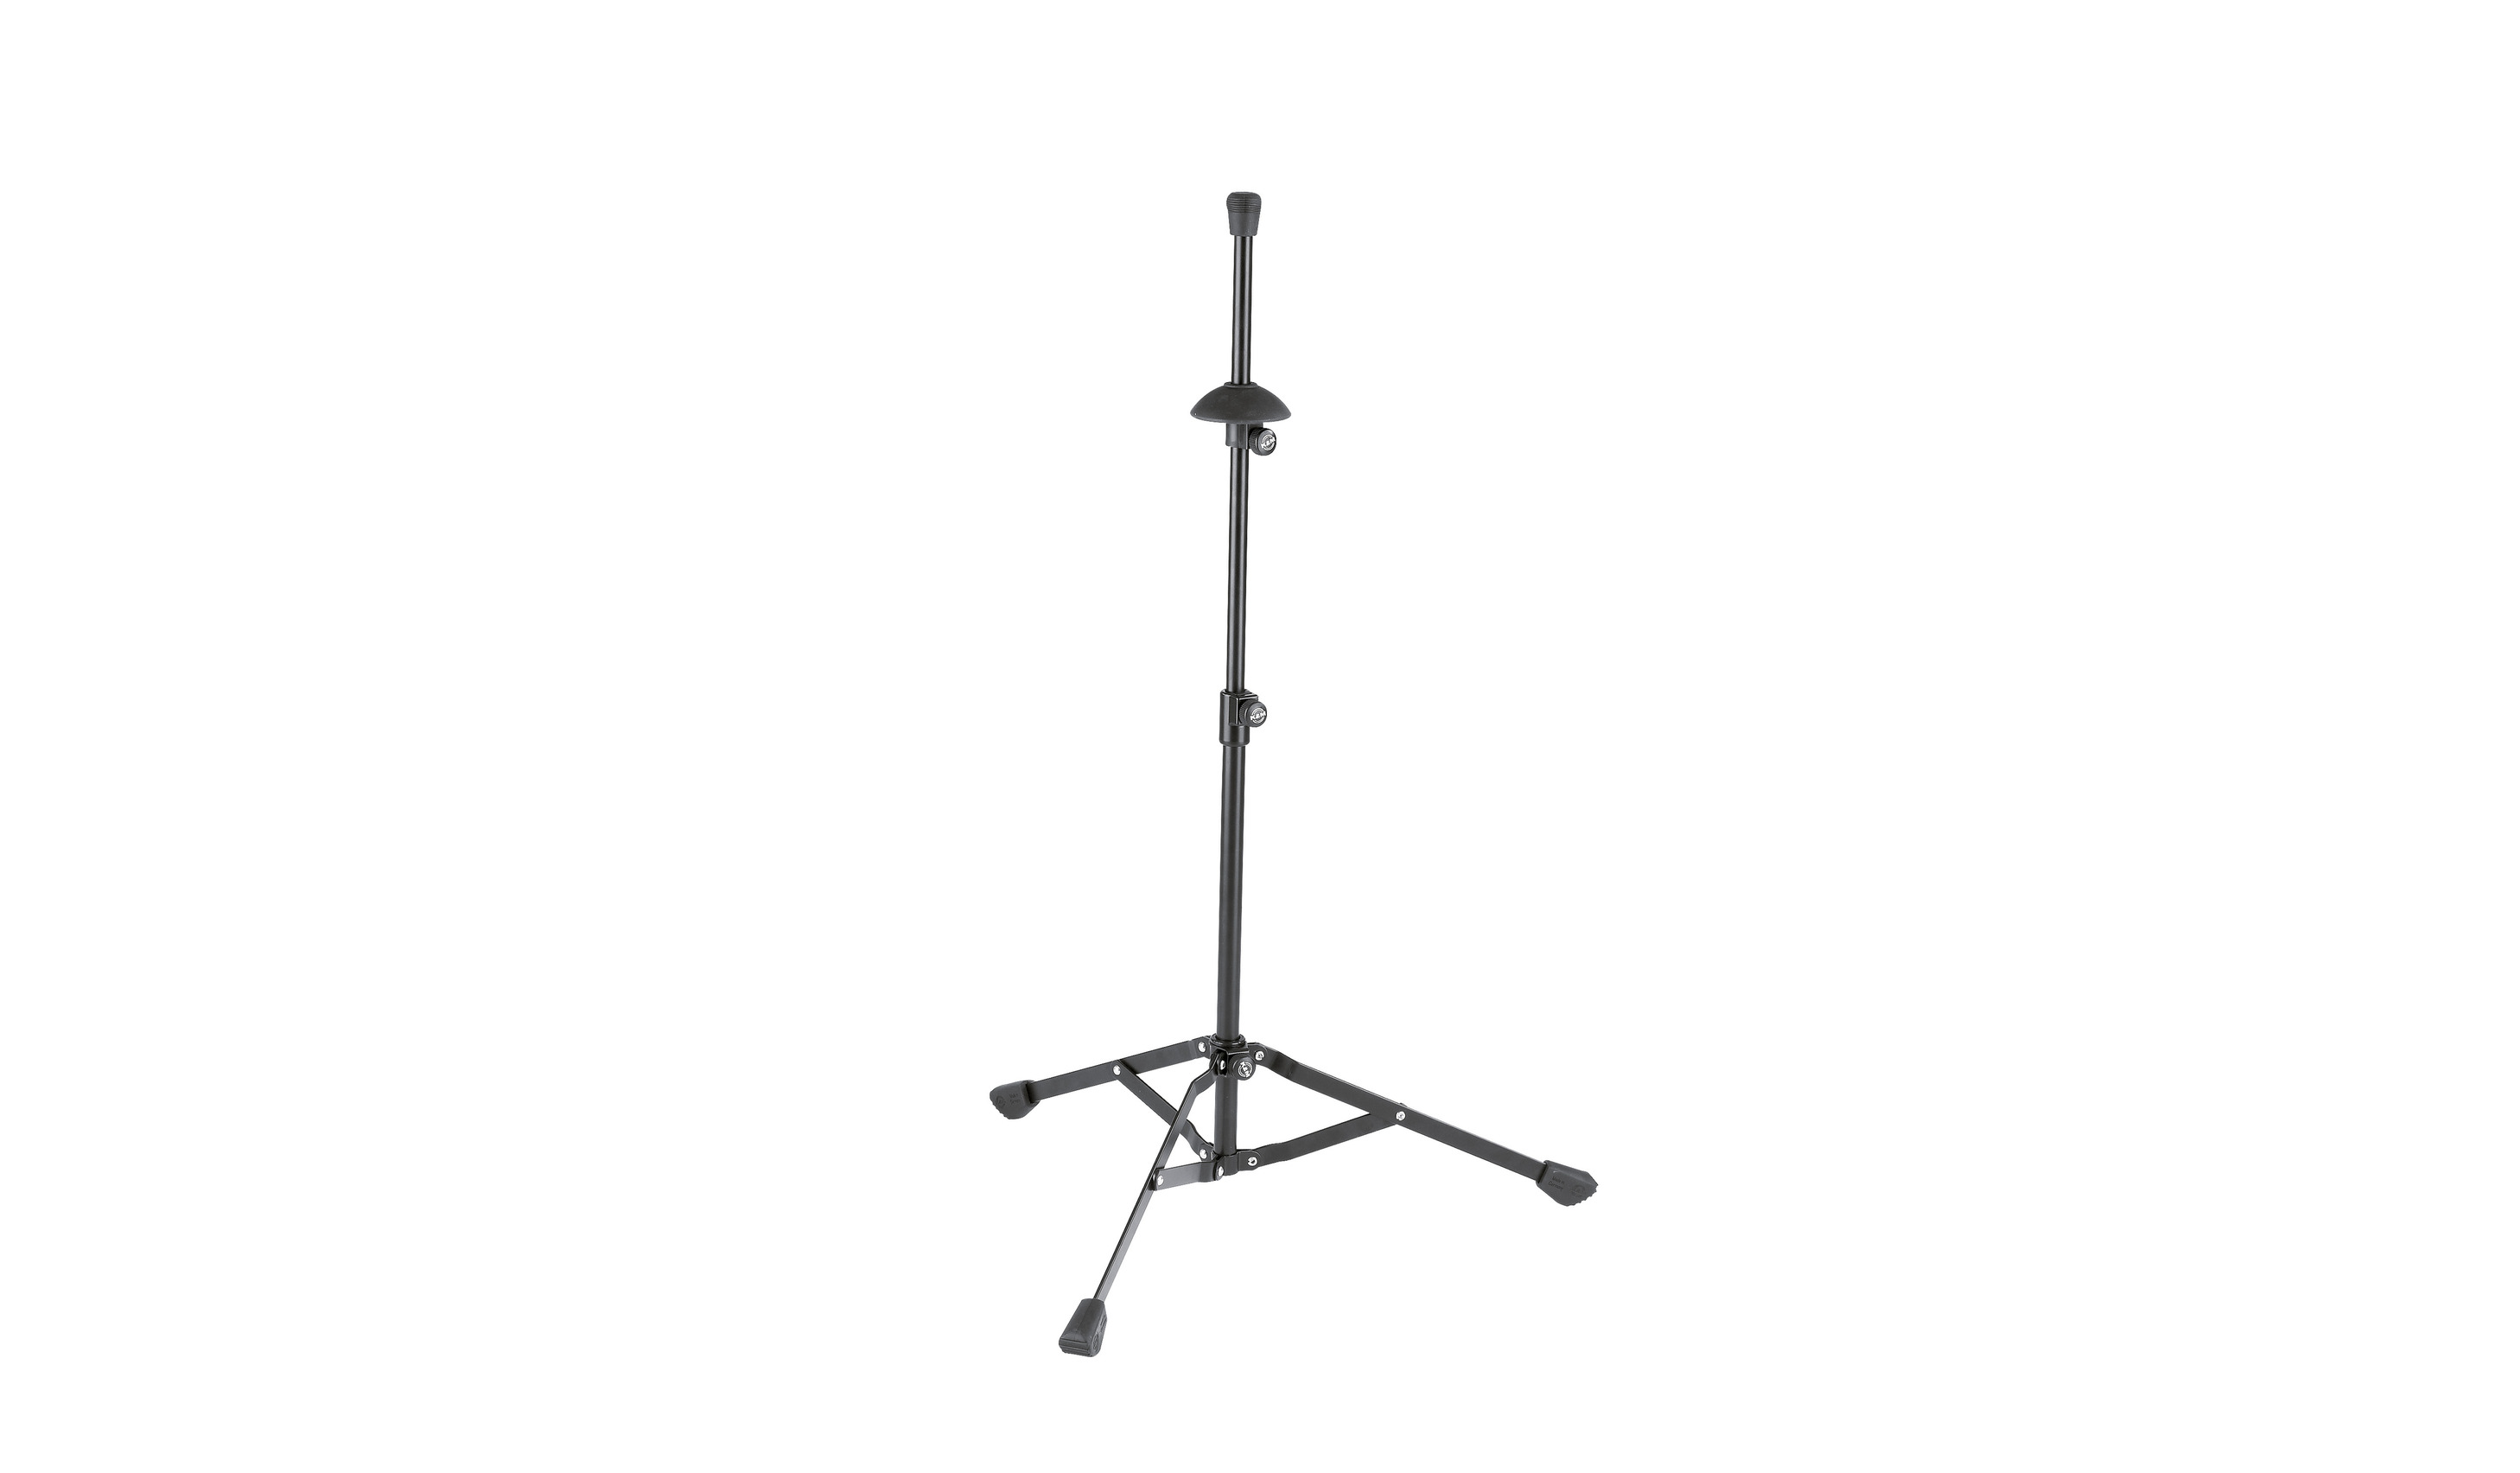 Trombone Stand by K&M 149/9